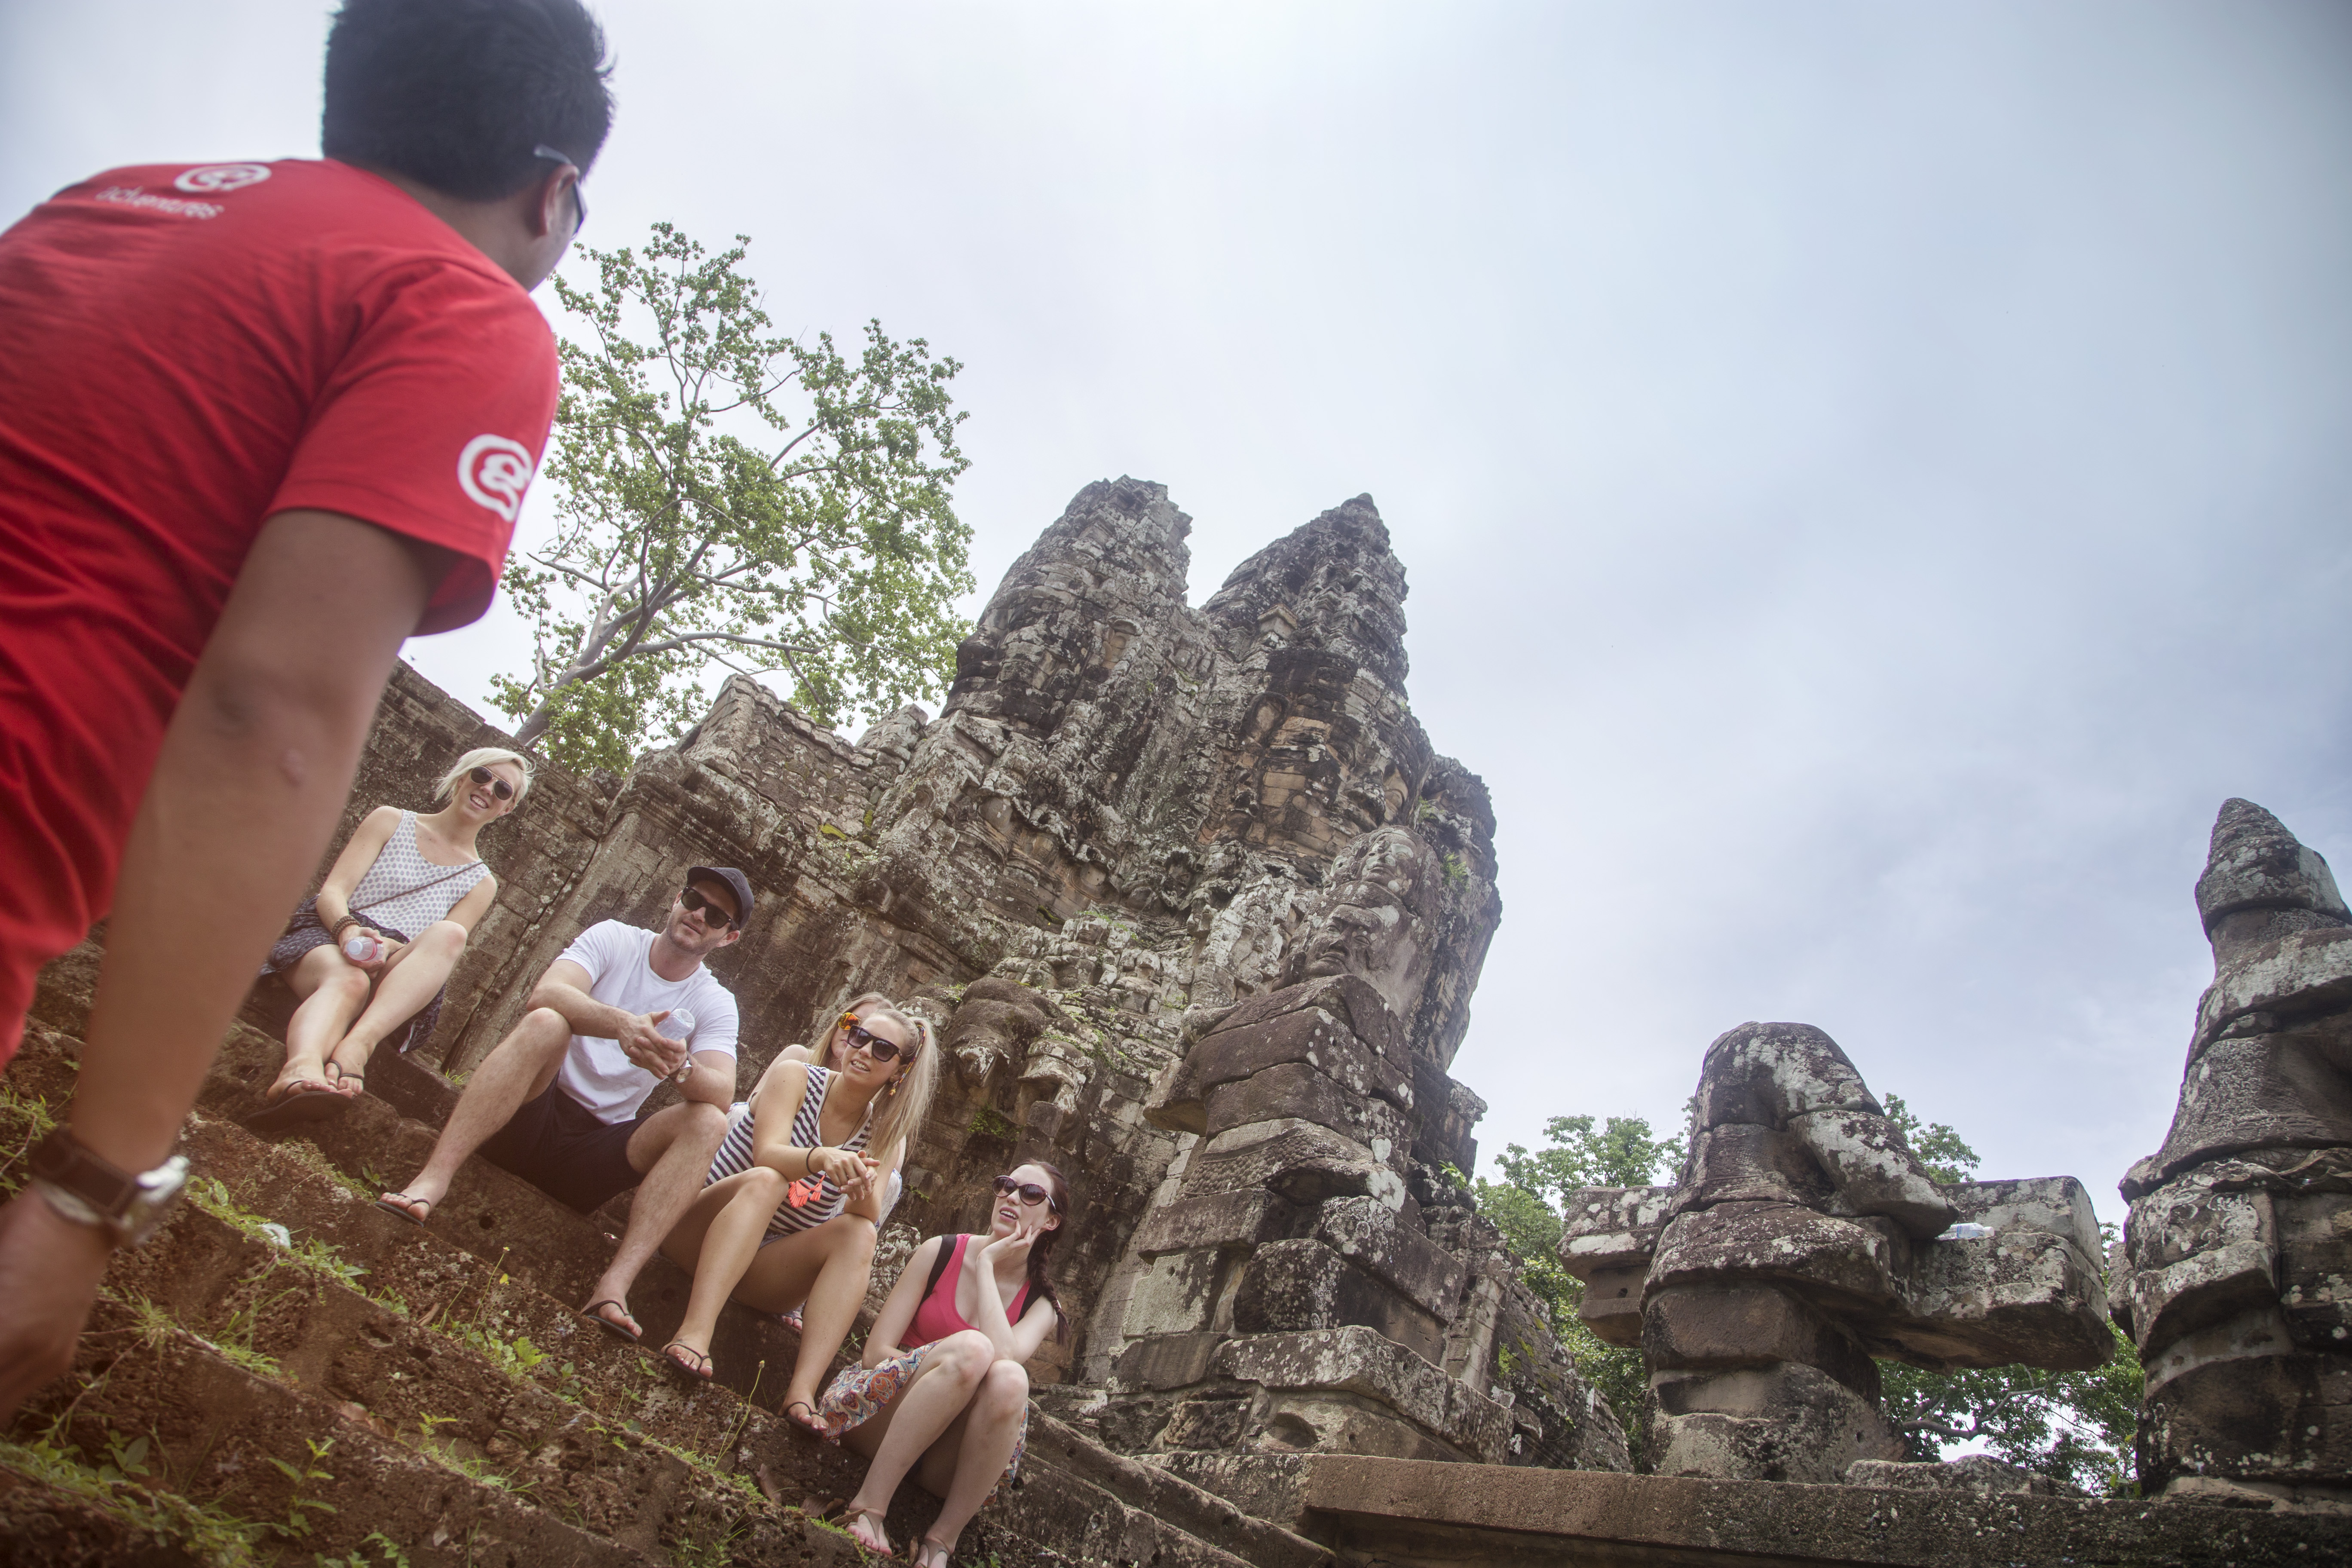 Where go to rest Russians Thailand and other leaders of the tourist rating